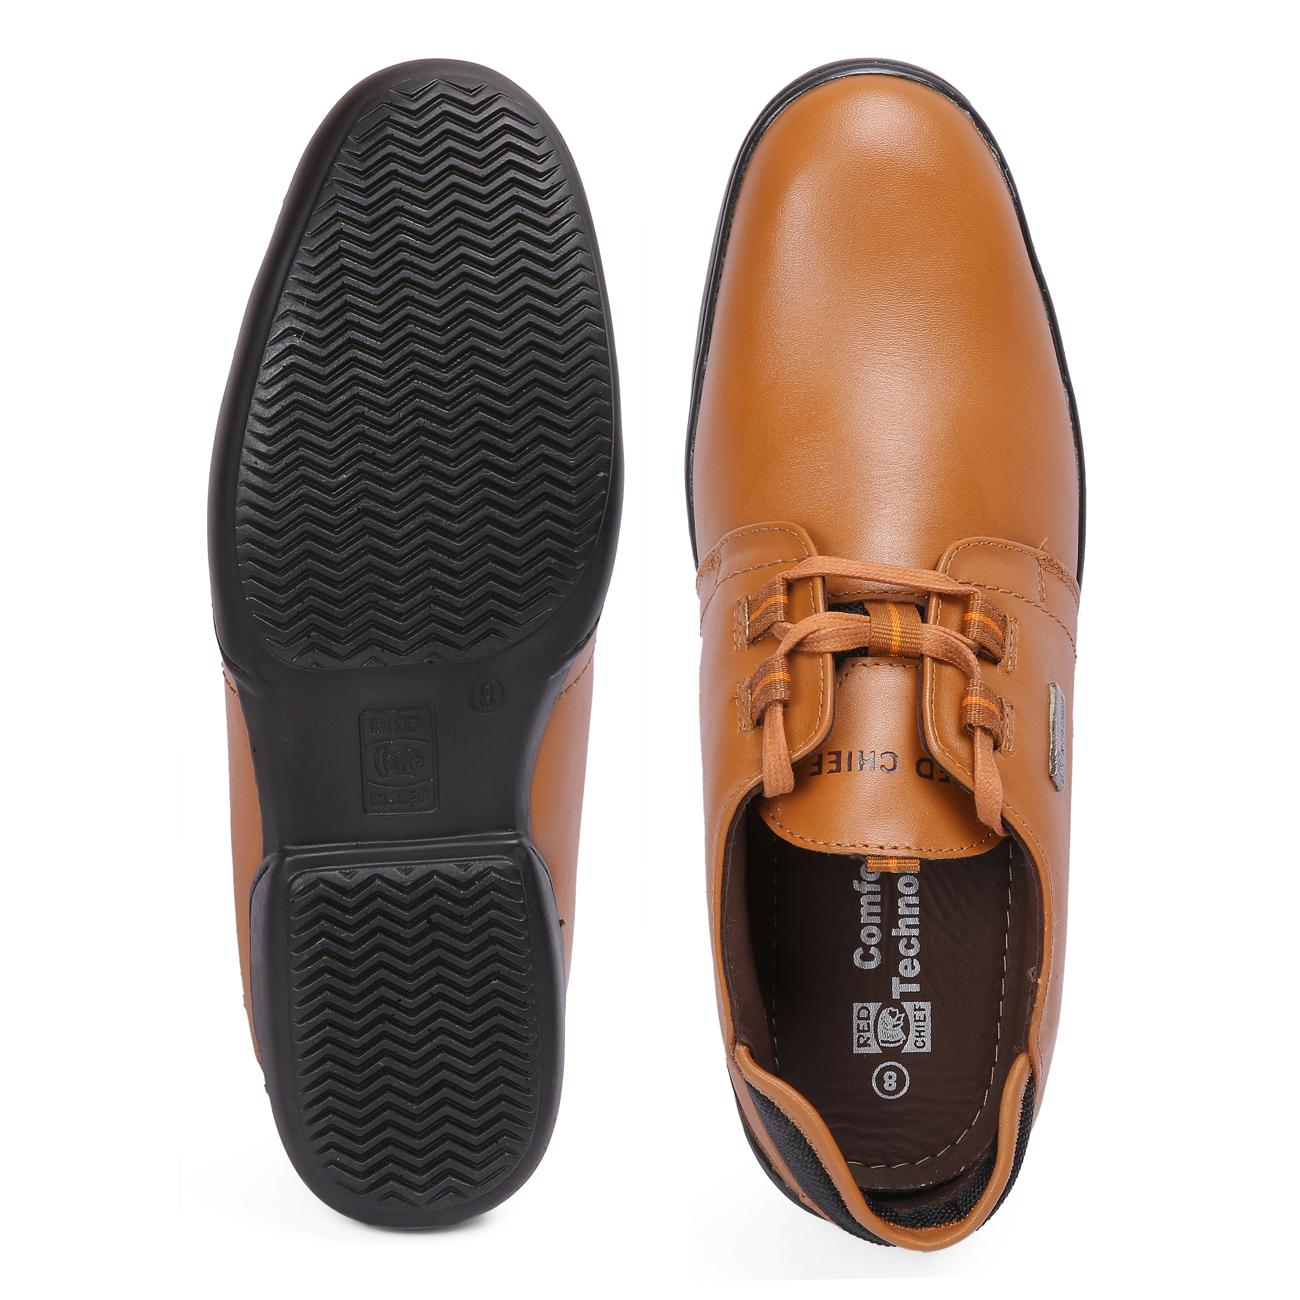 n tan casual leather shoes top view